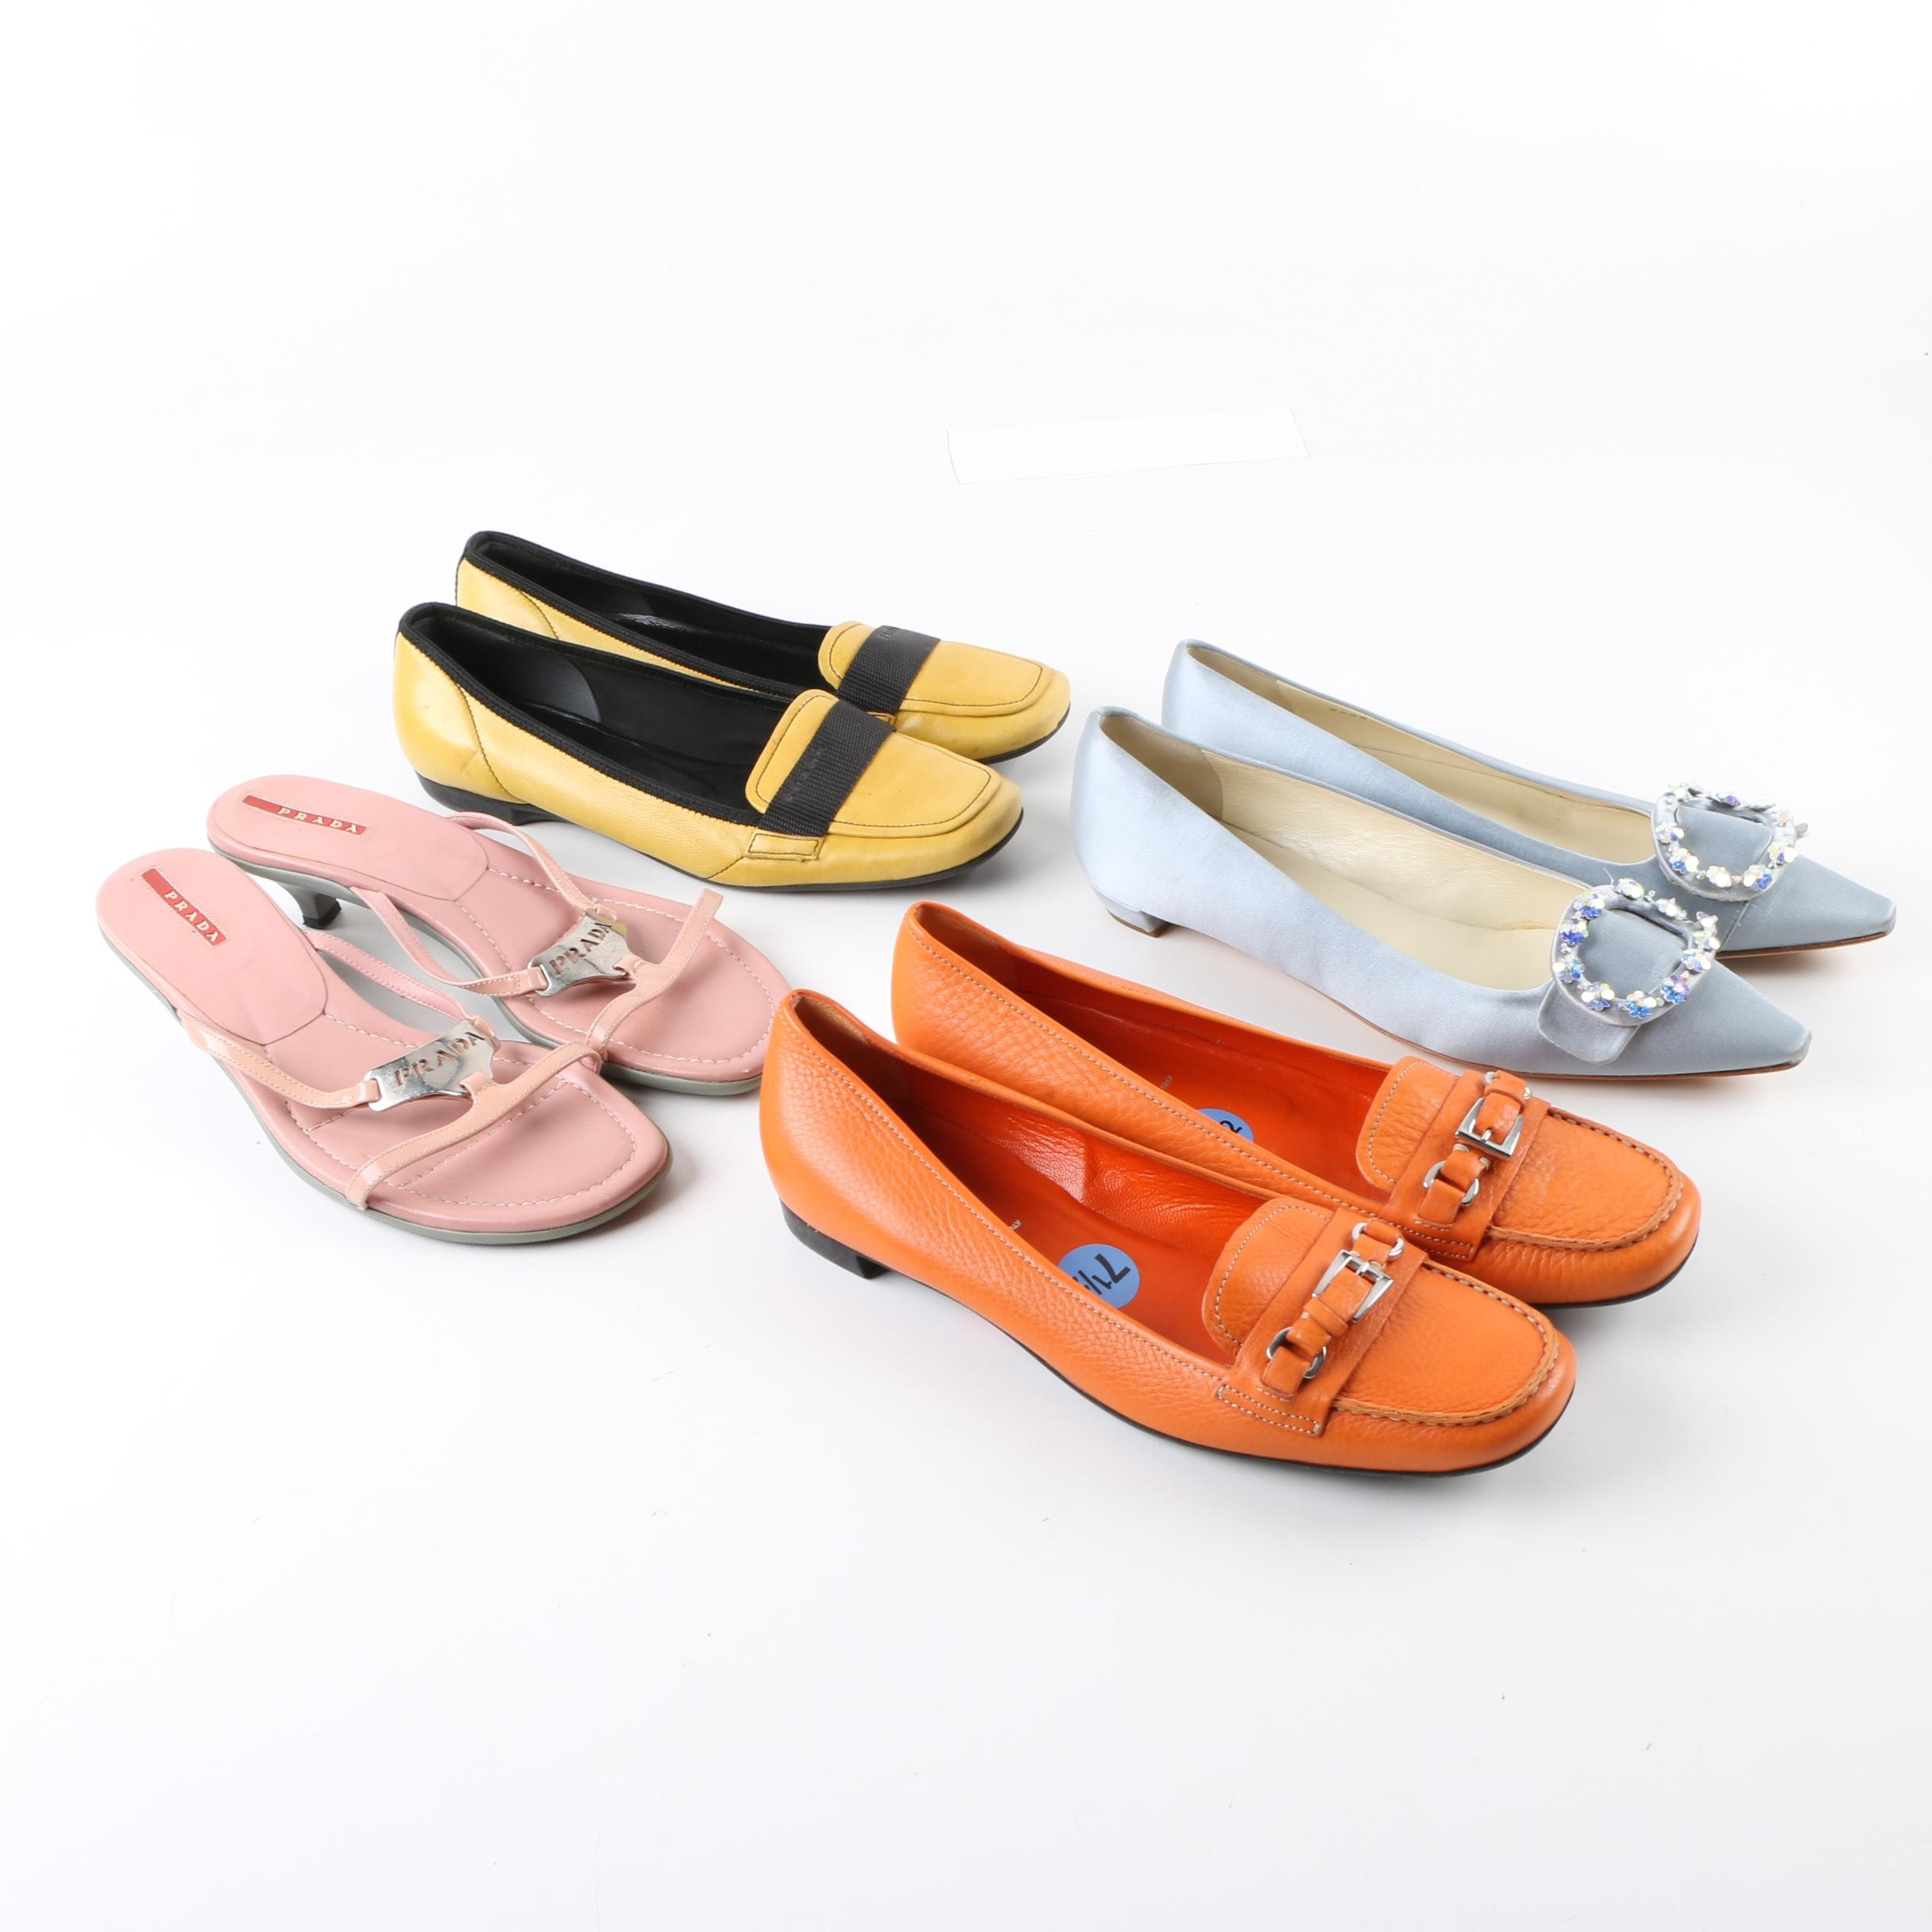 Women's Prada Loafers and Heeled Sandals